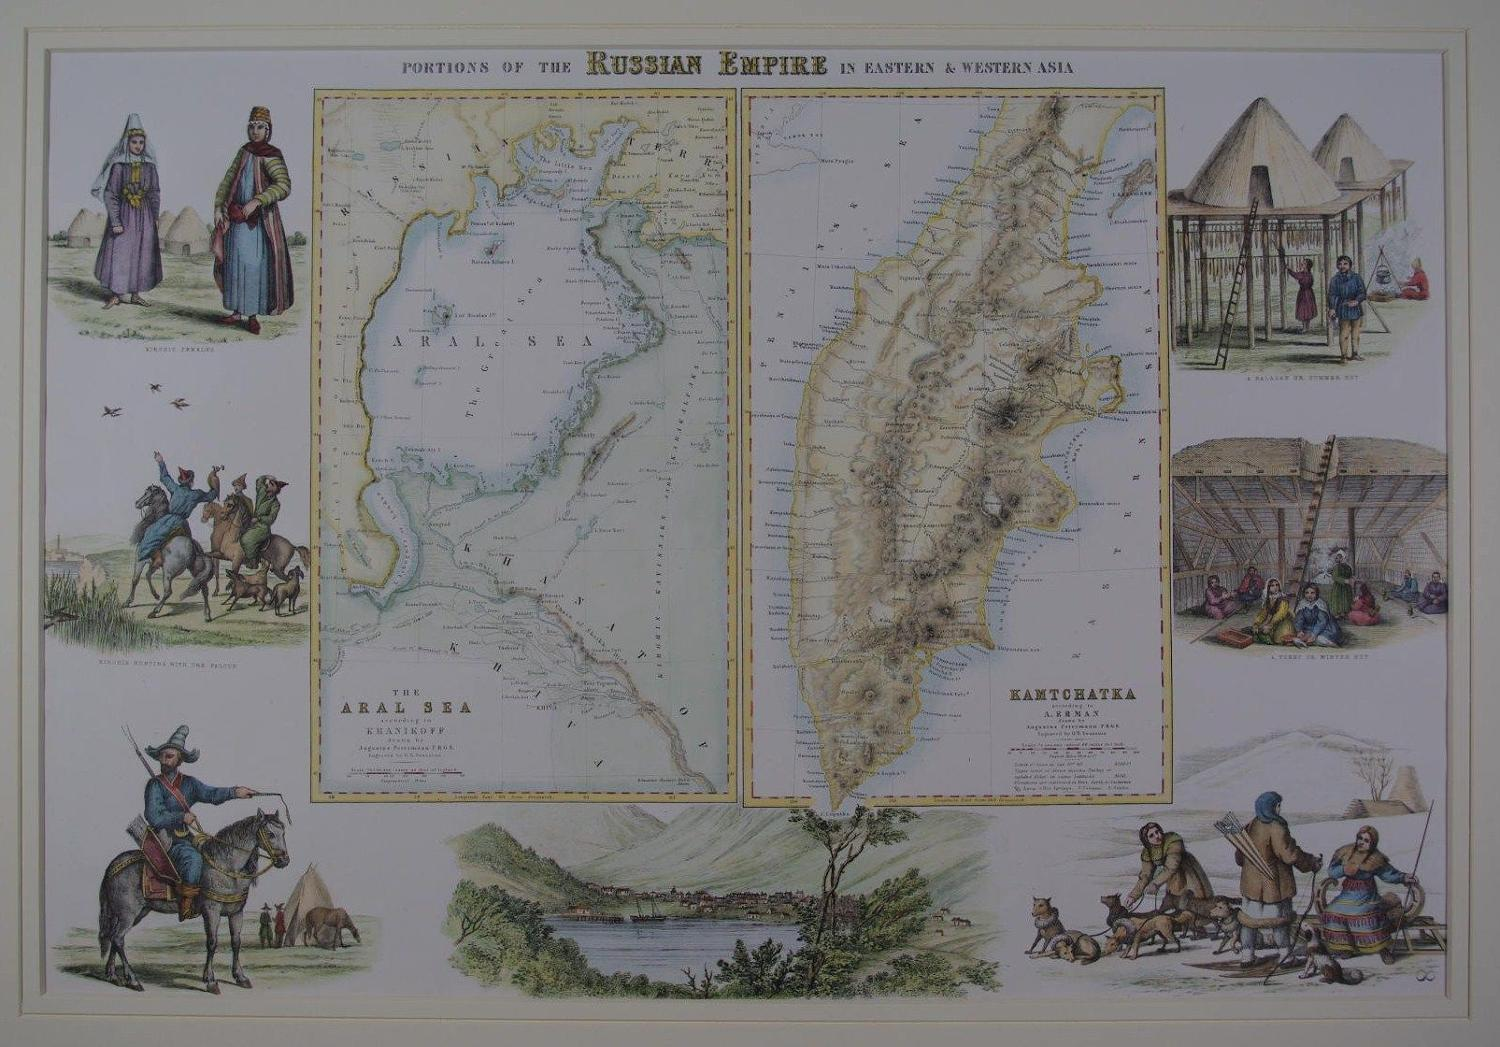 Portions of the Russian Empire in Eastern & Western Asia by Archibald